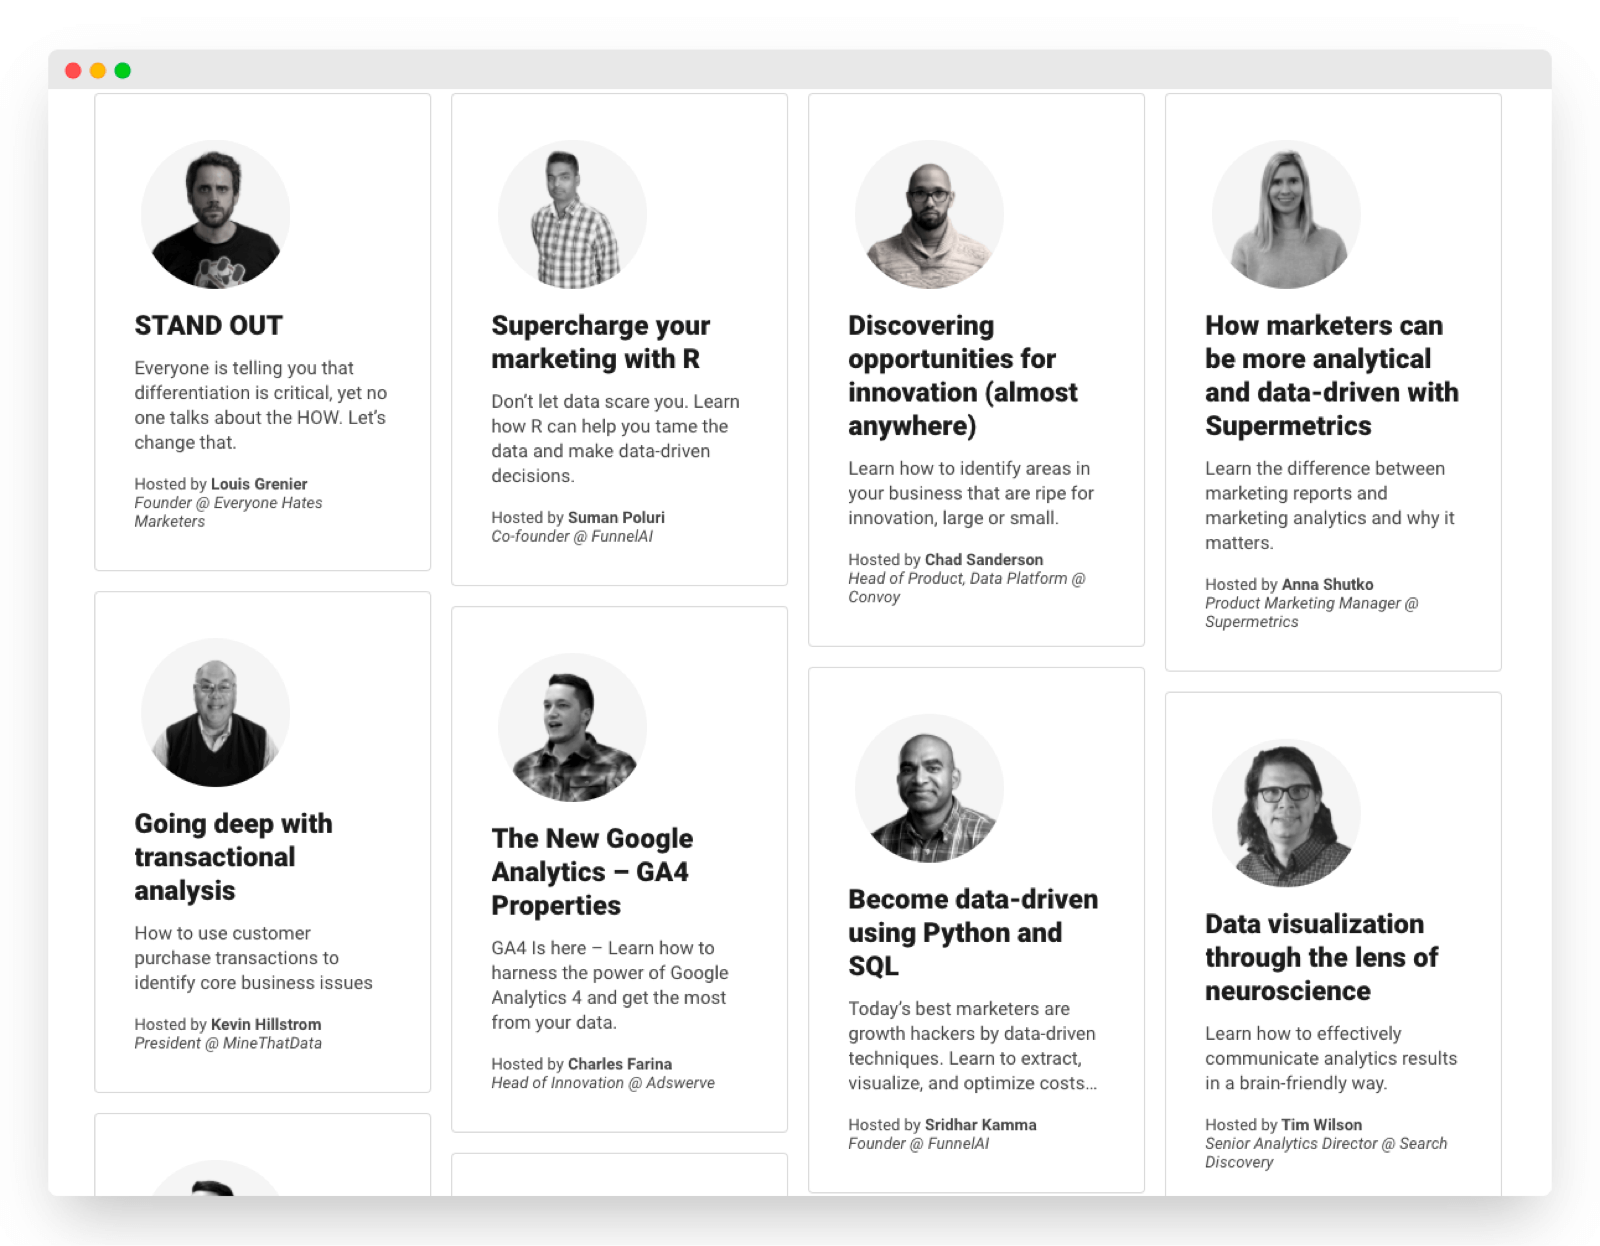 Roster of experts with personal experience